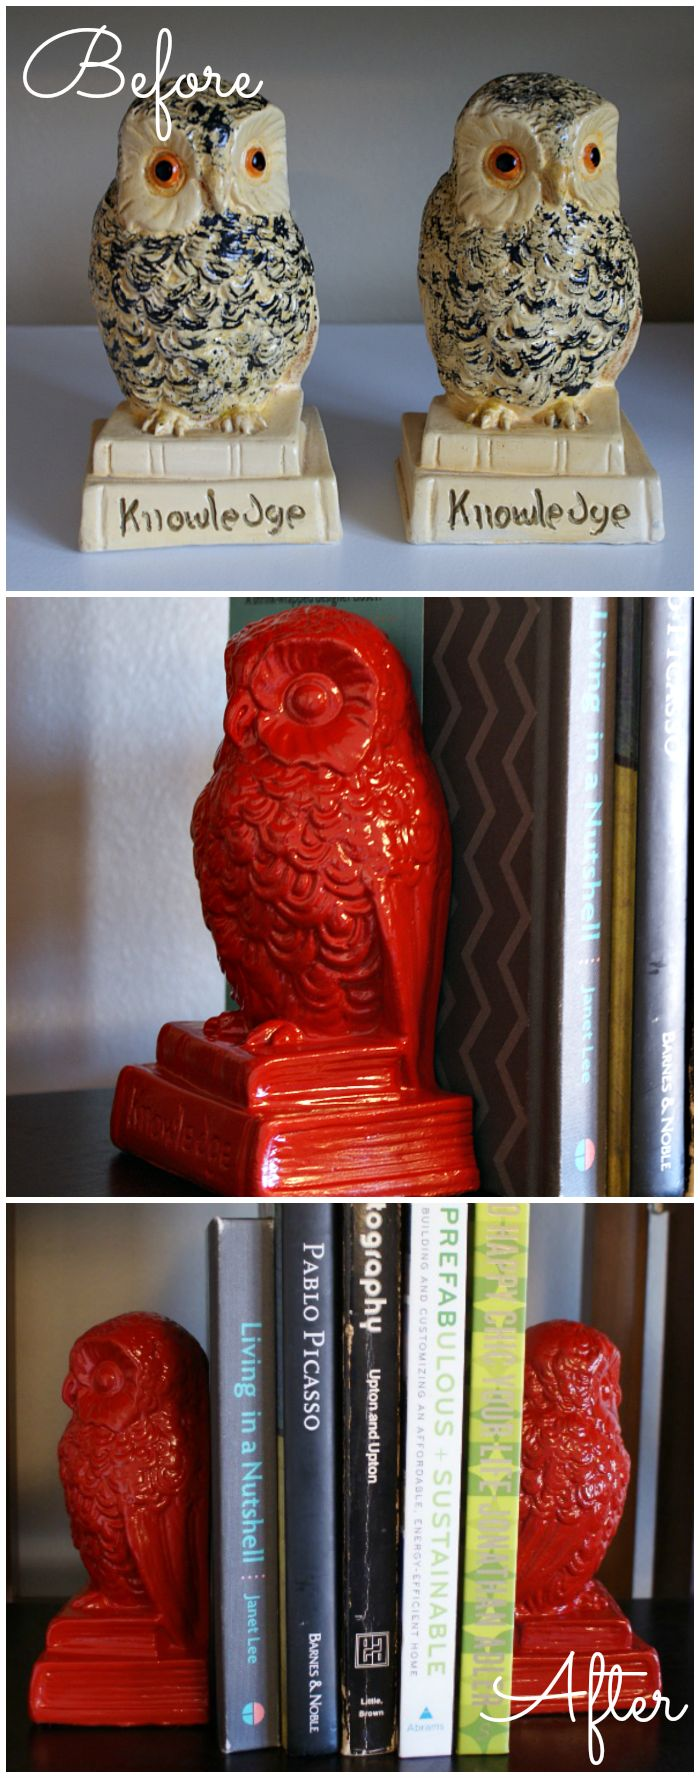 Spray paint vintage bookends for a quick and cheap DIY update. These bright red owls are so cute!